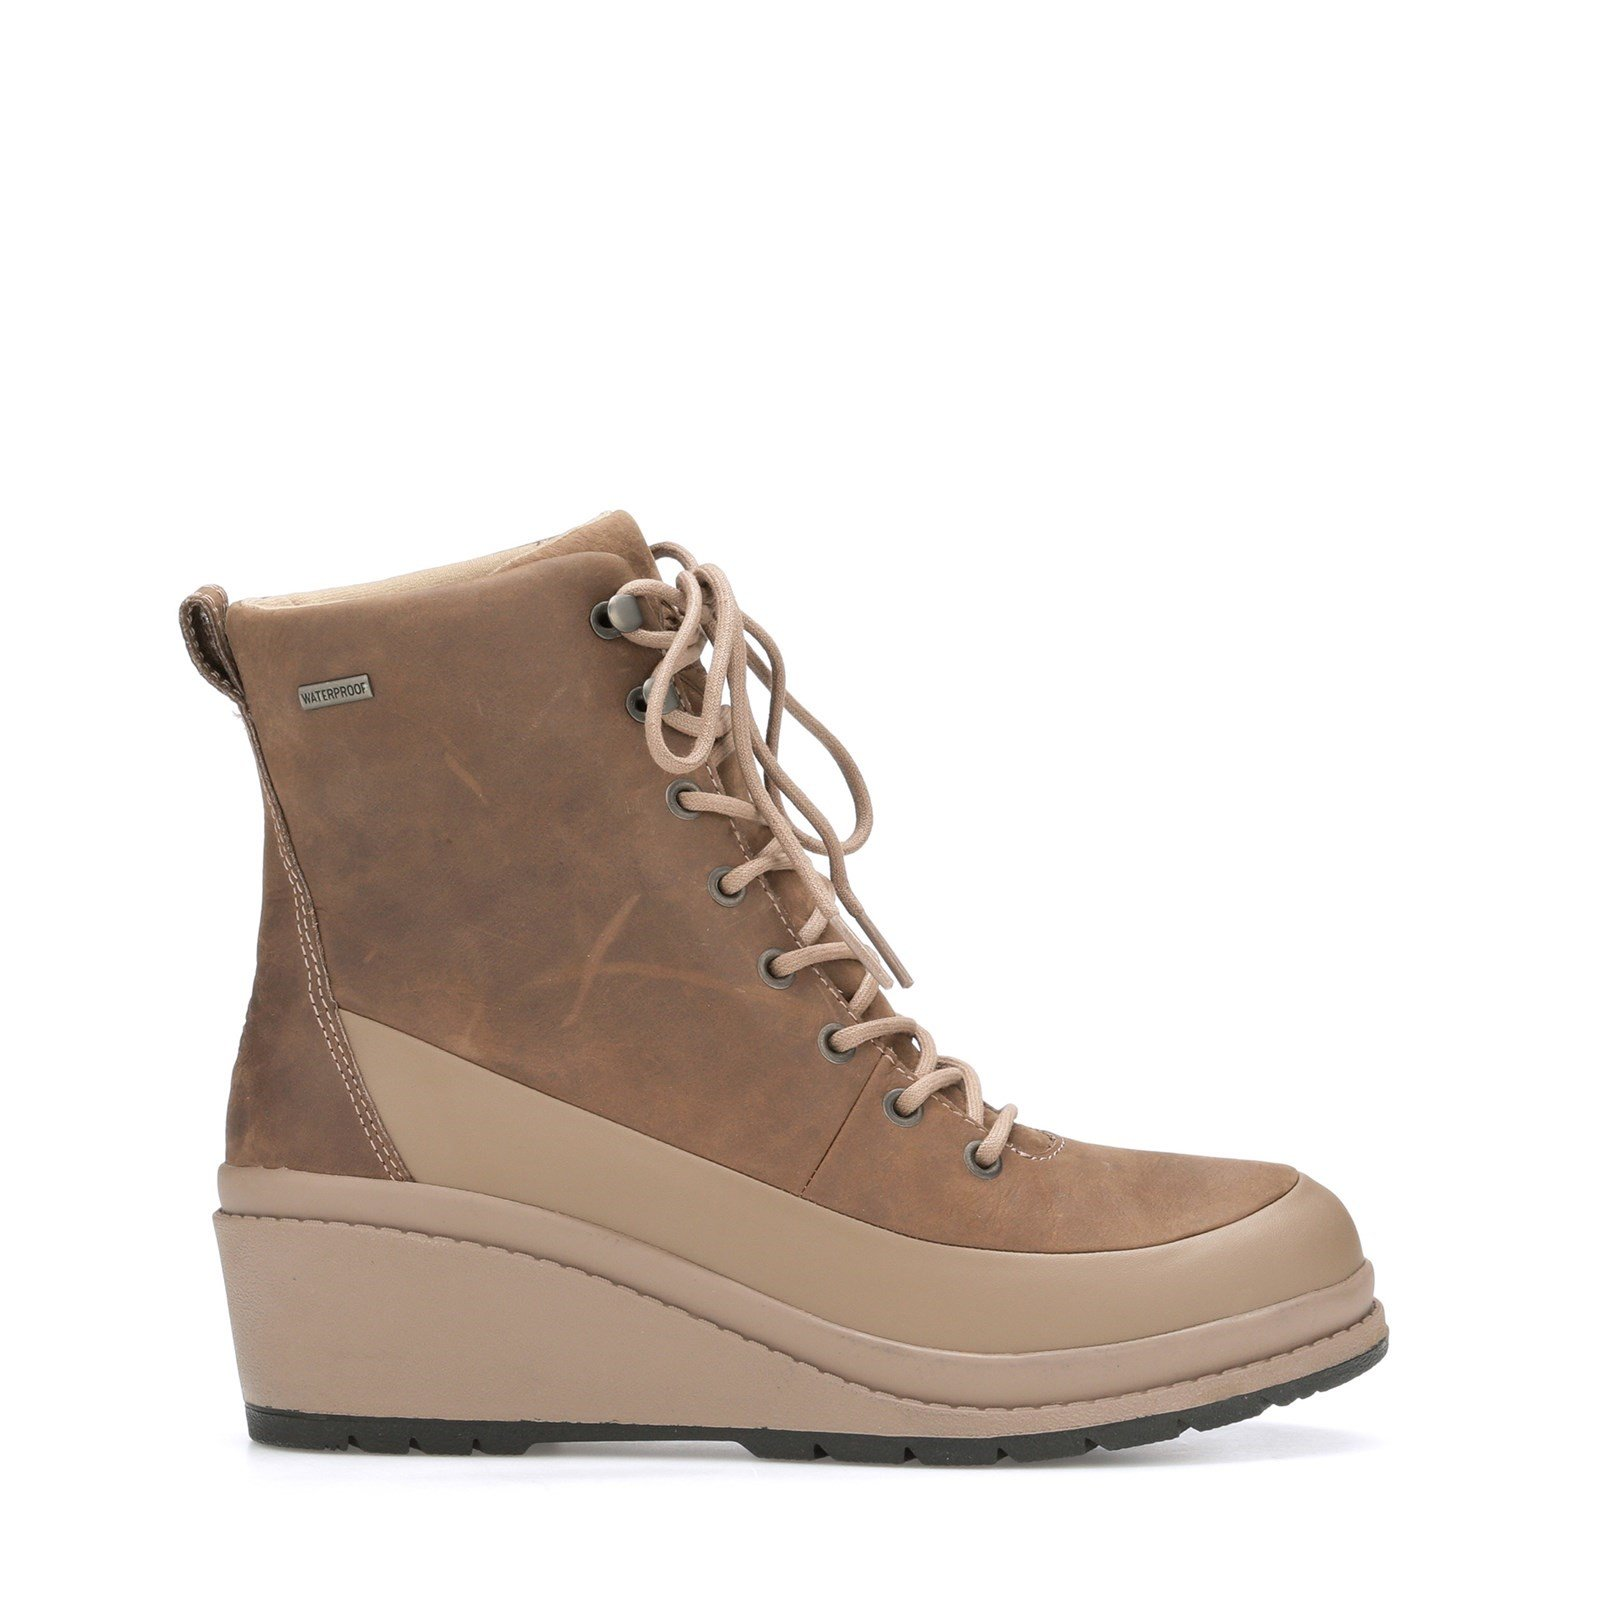 Muck Boots Women's Liberty Leather Ankle Boots Various Colours 31813 - Taupe 6